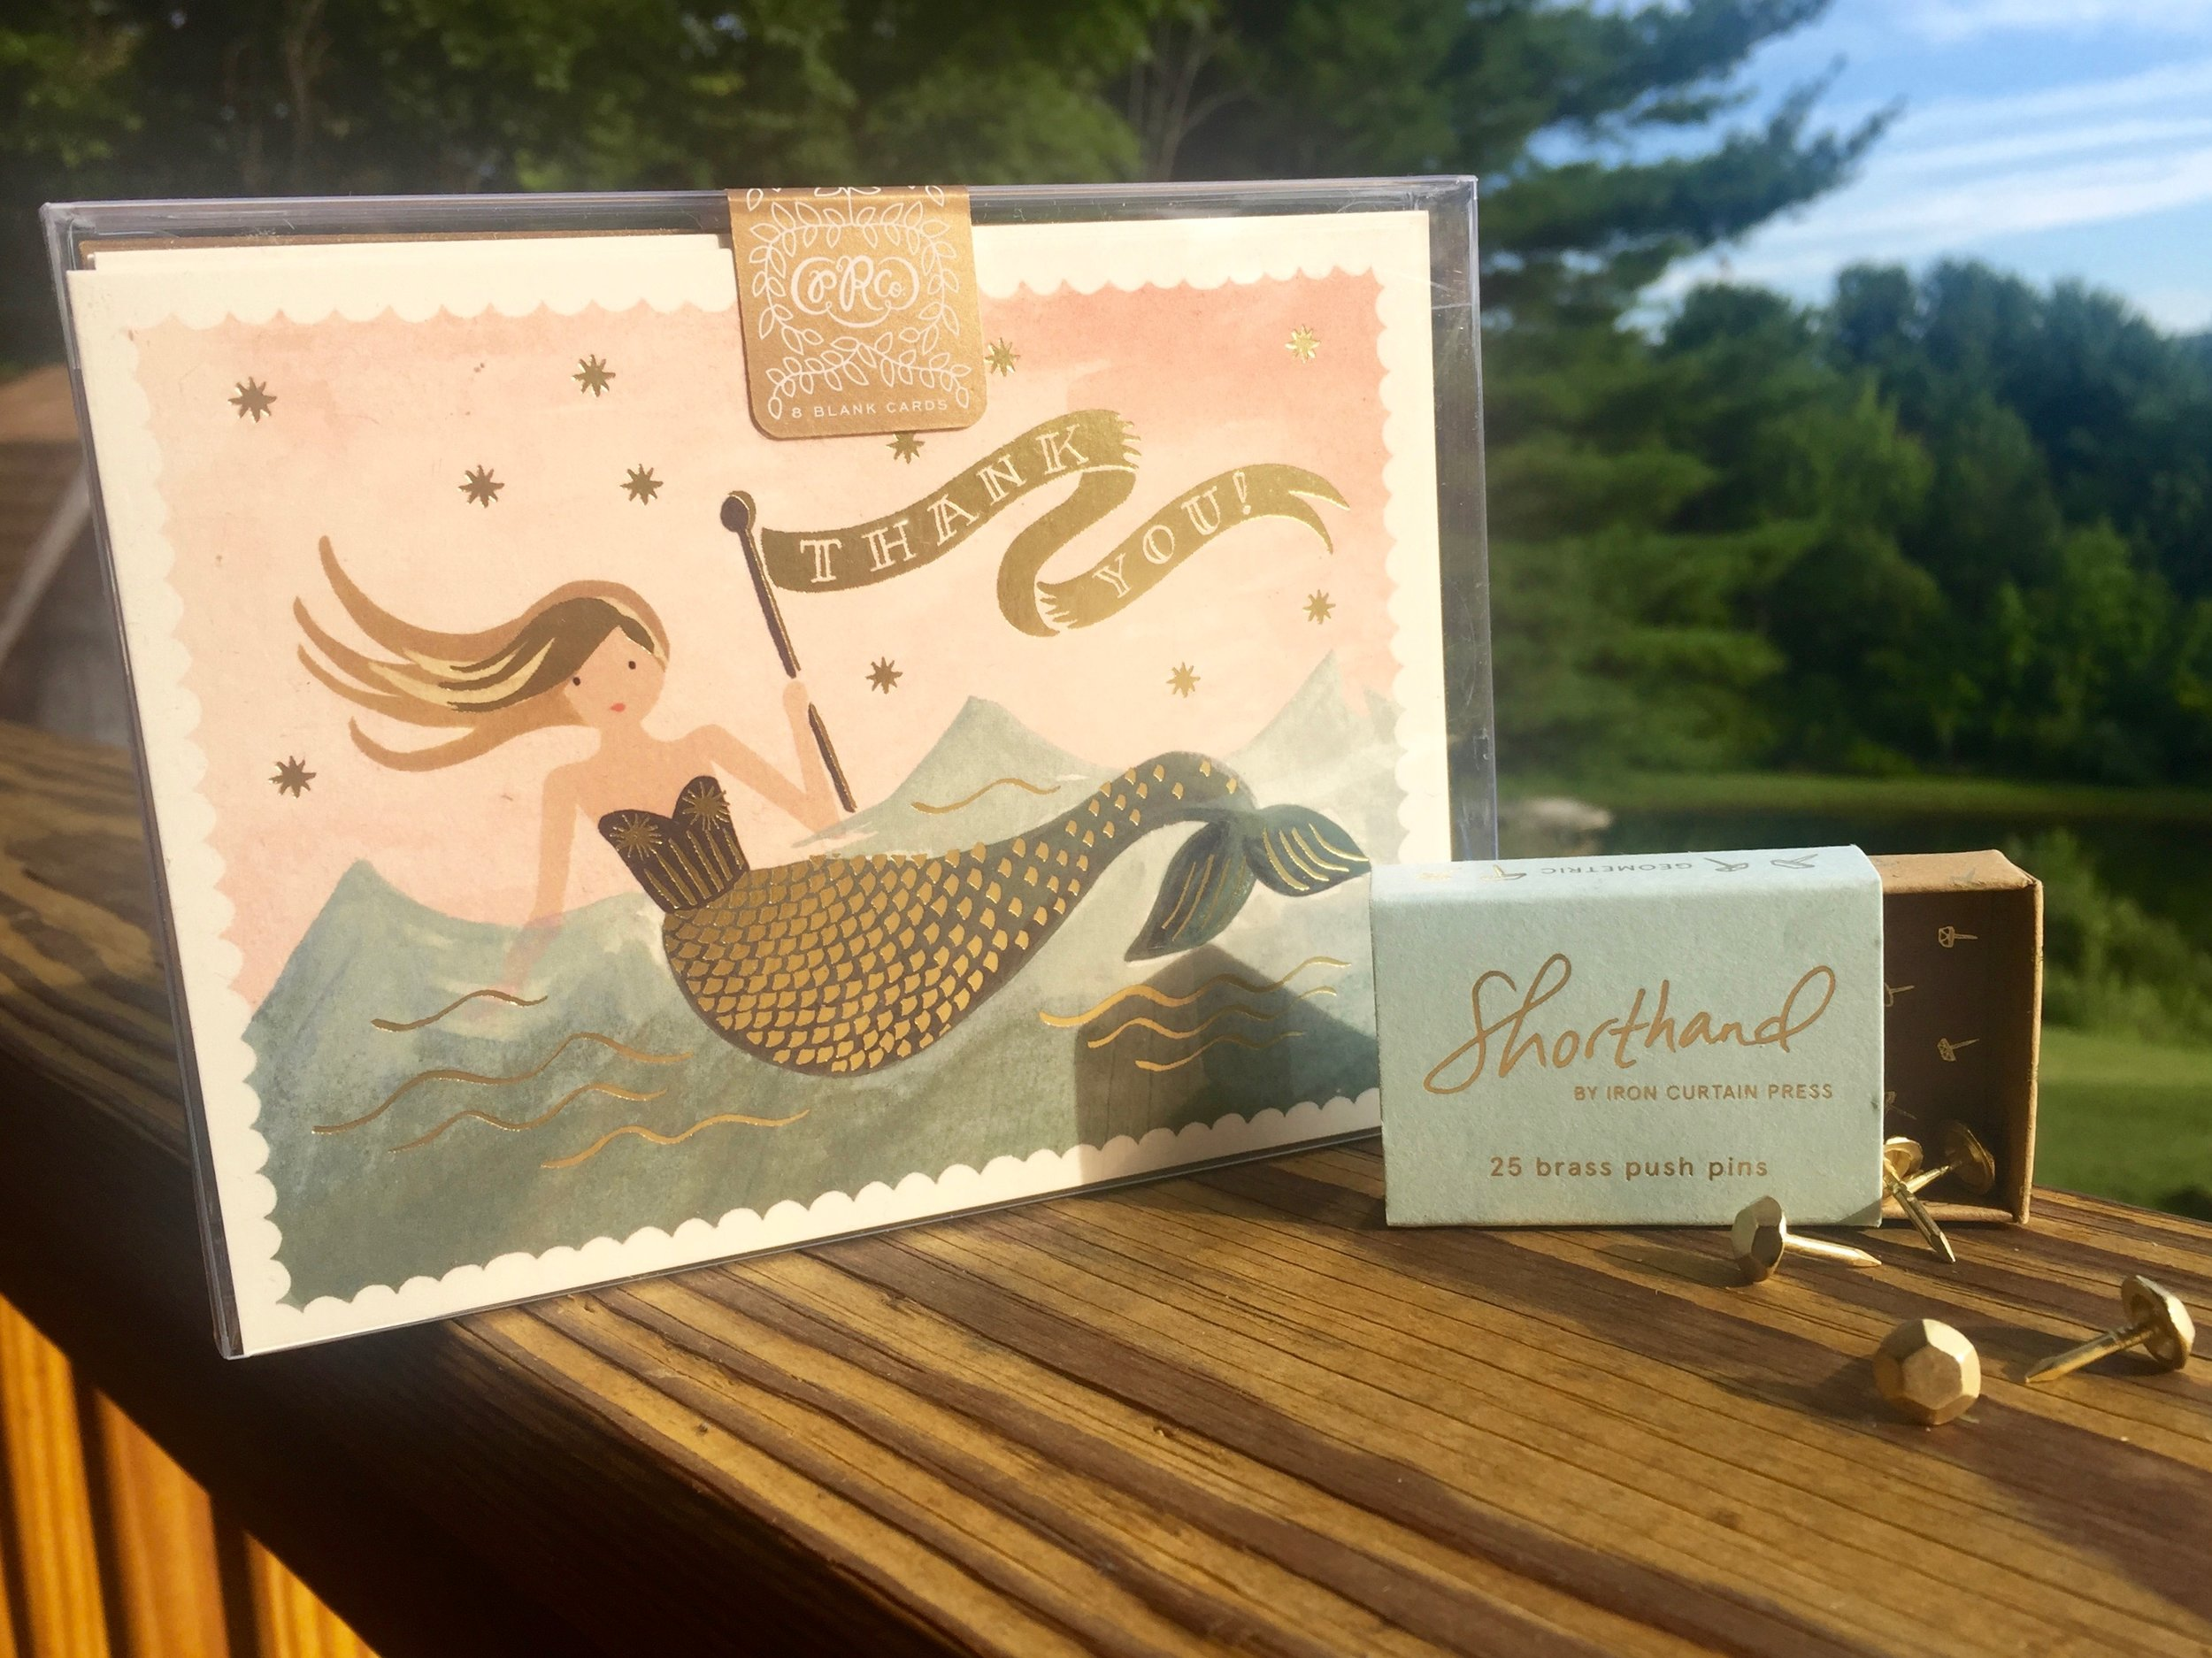 mermaid thank you notes and brass push pins